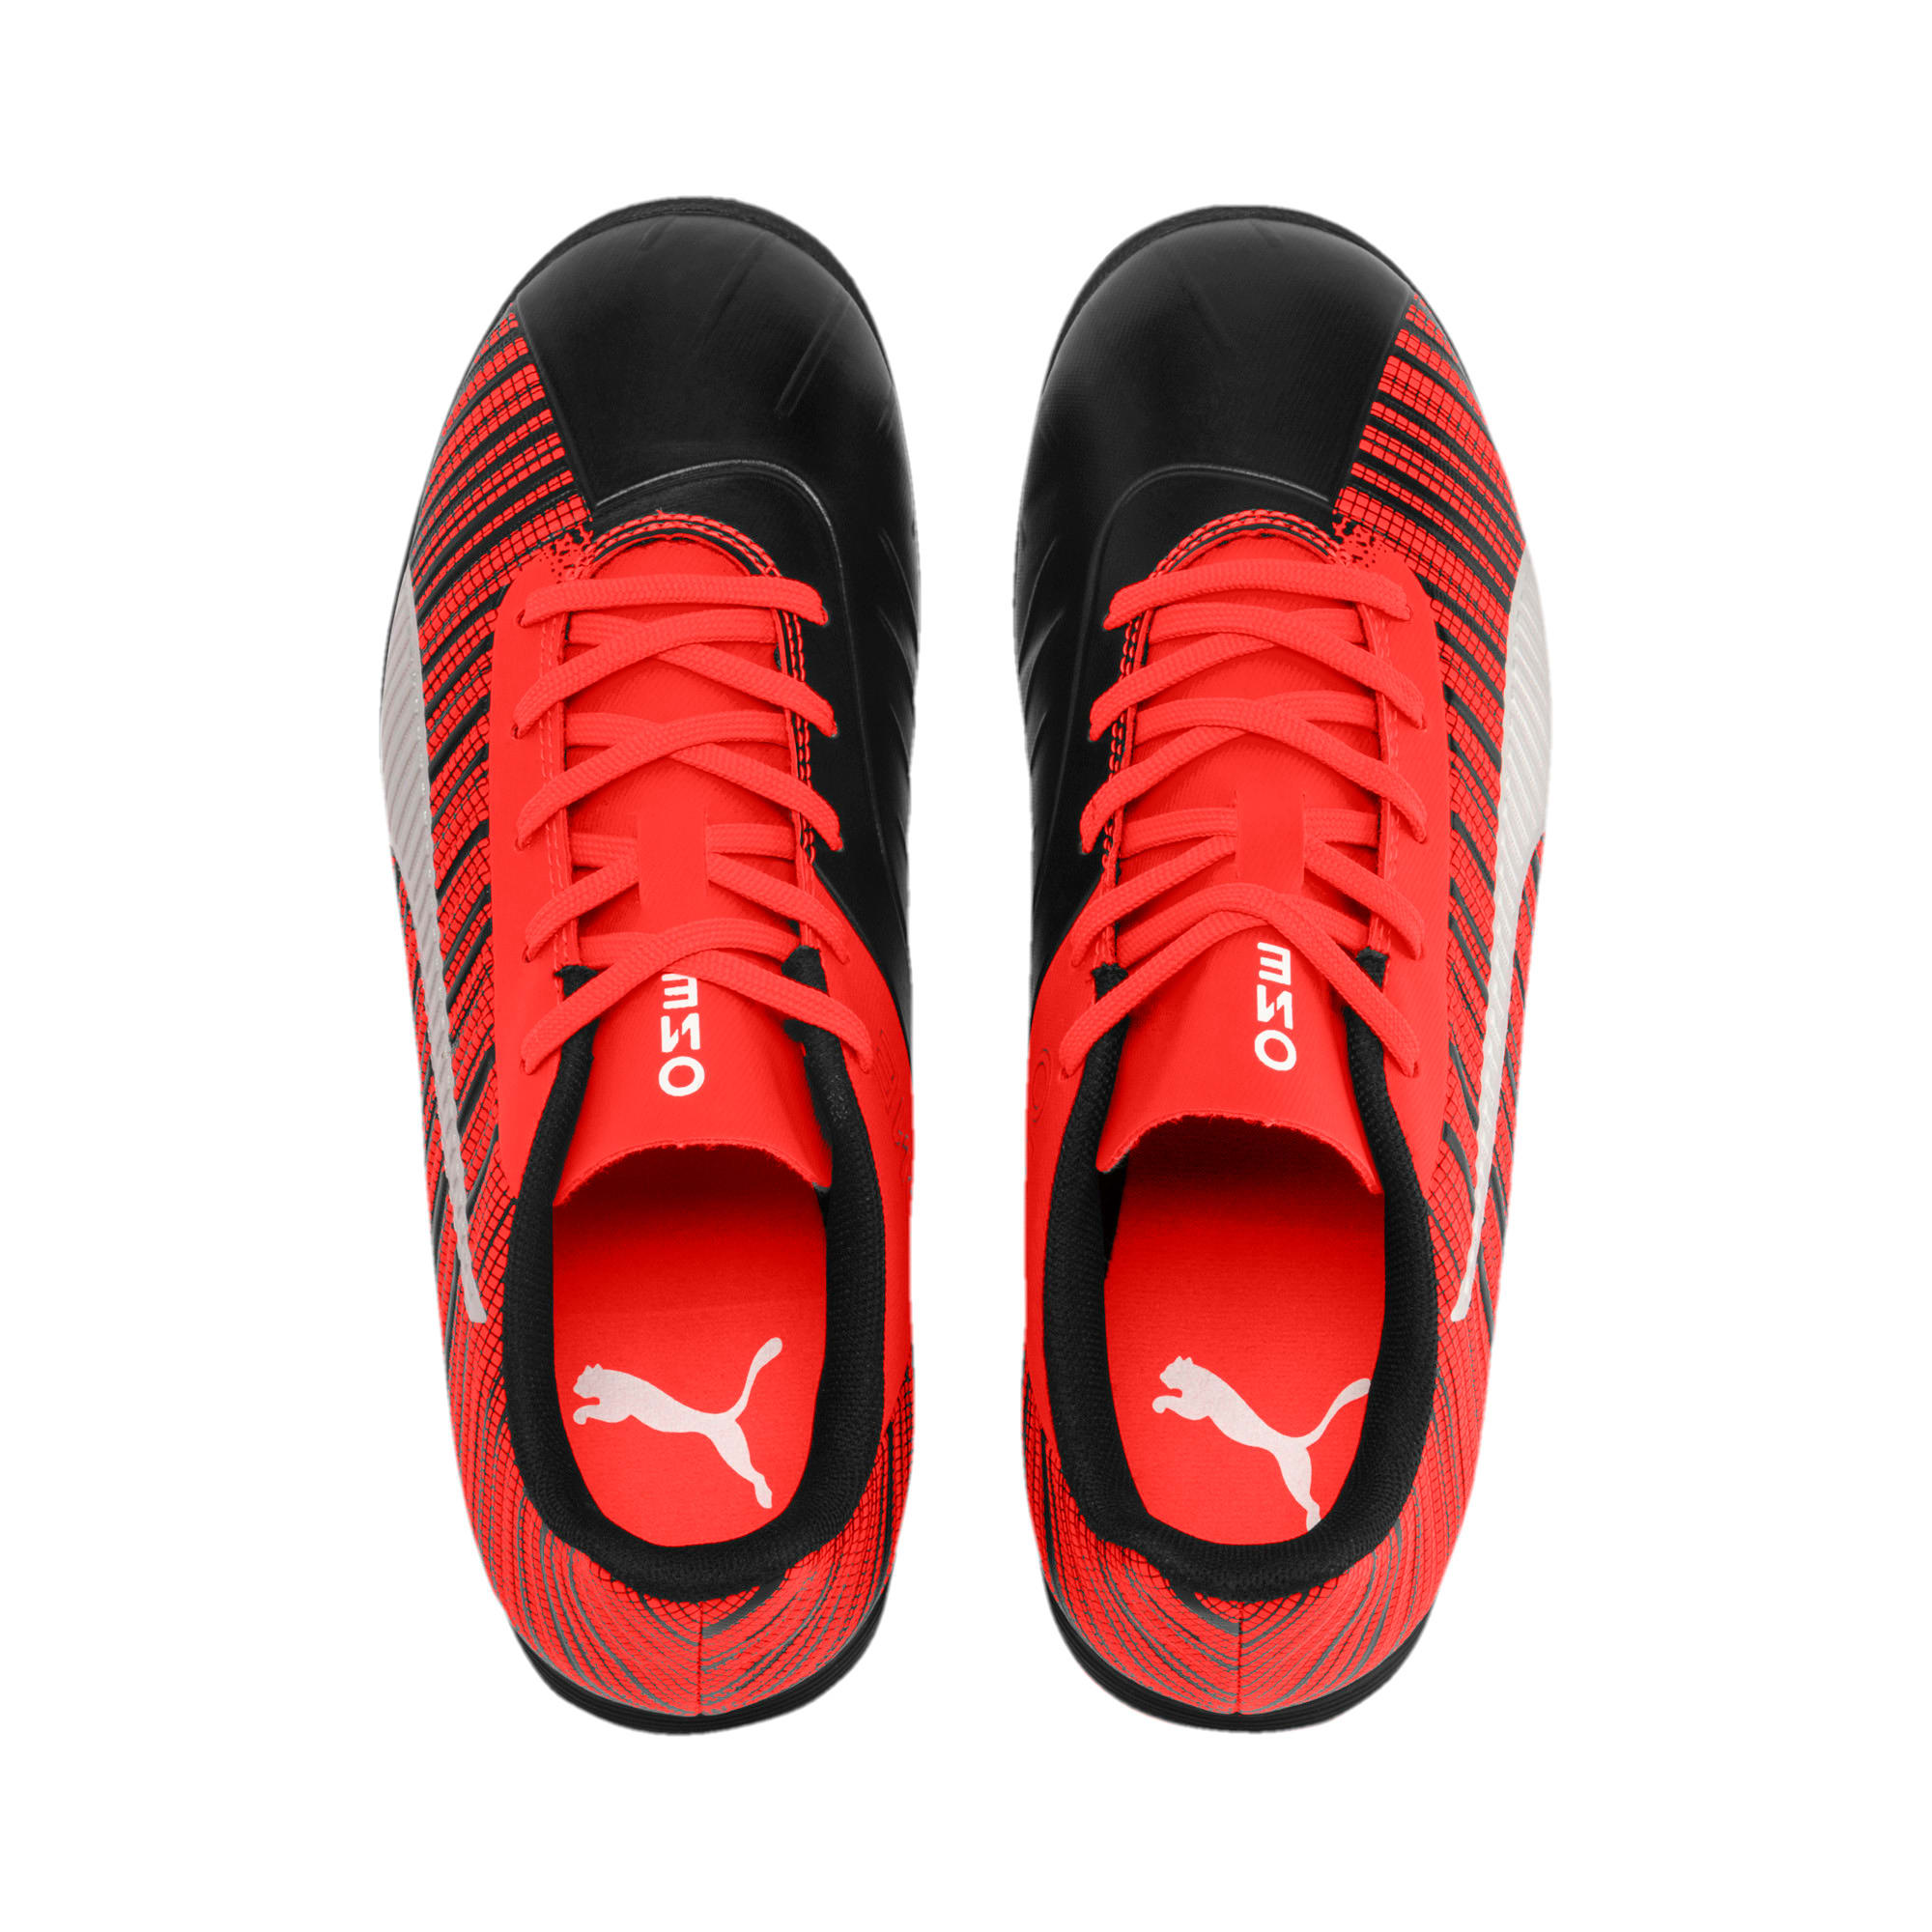 Thumbnail 6 of PUMA ONE 5.4 TT Youth Football Boots, Black-Nrgy Red-Aged Silver, medium-IND